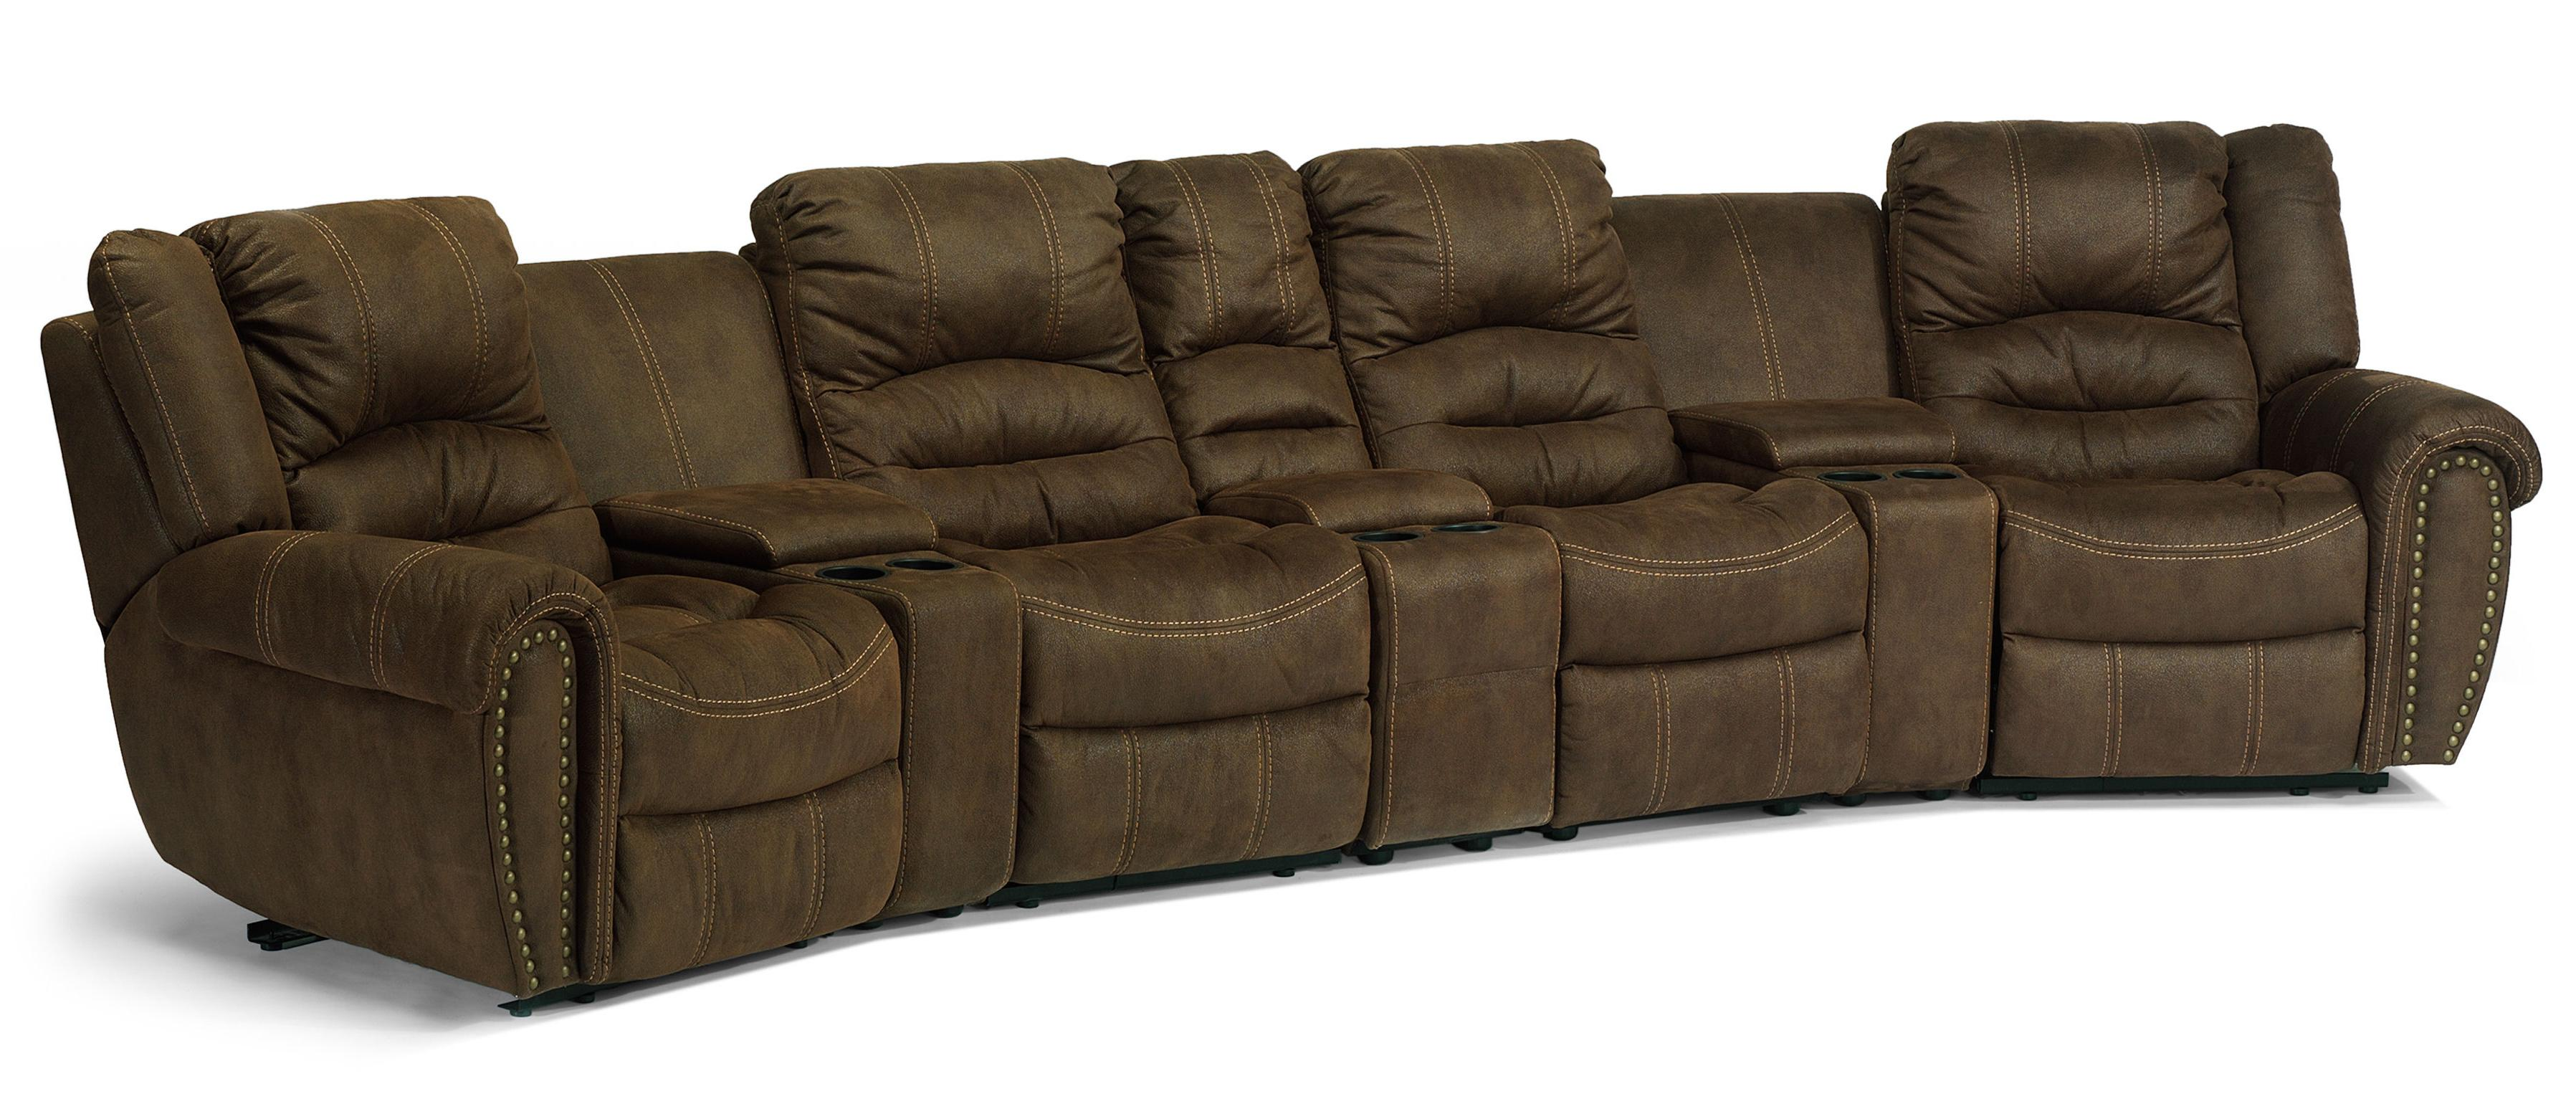 Flexsteel Latitudes - New Town Reclining Sectional Sofa - Item Number 1410-57P+  sc 1 st  Olindeu0027s Furniture : reclining sofa sectionals - Sectionals, Sofas & Couches